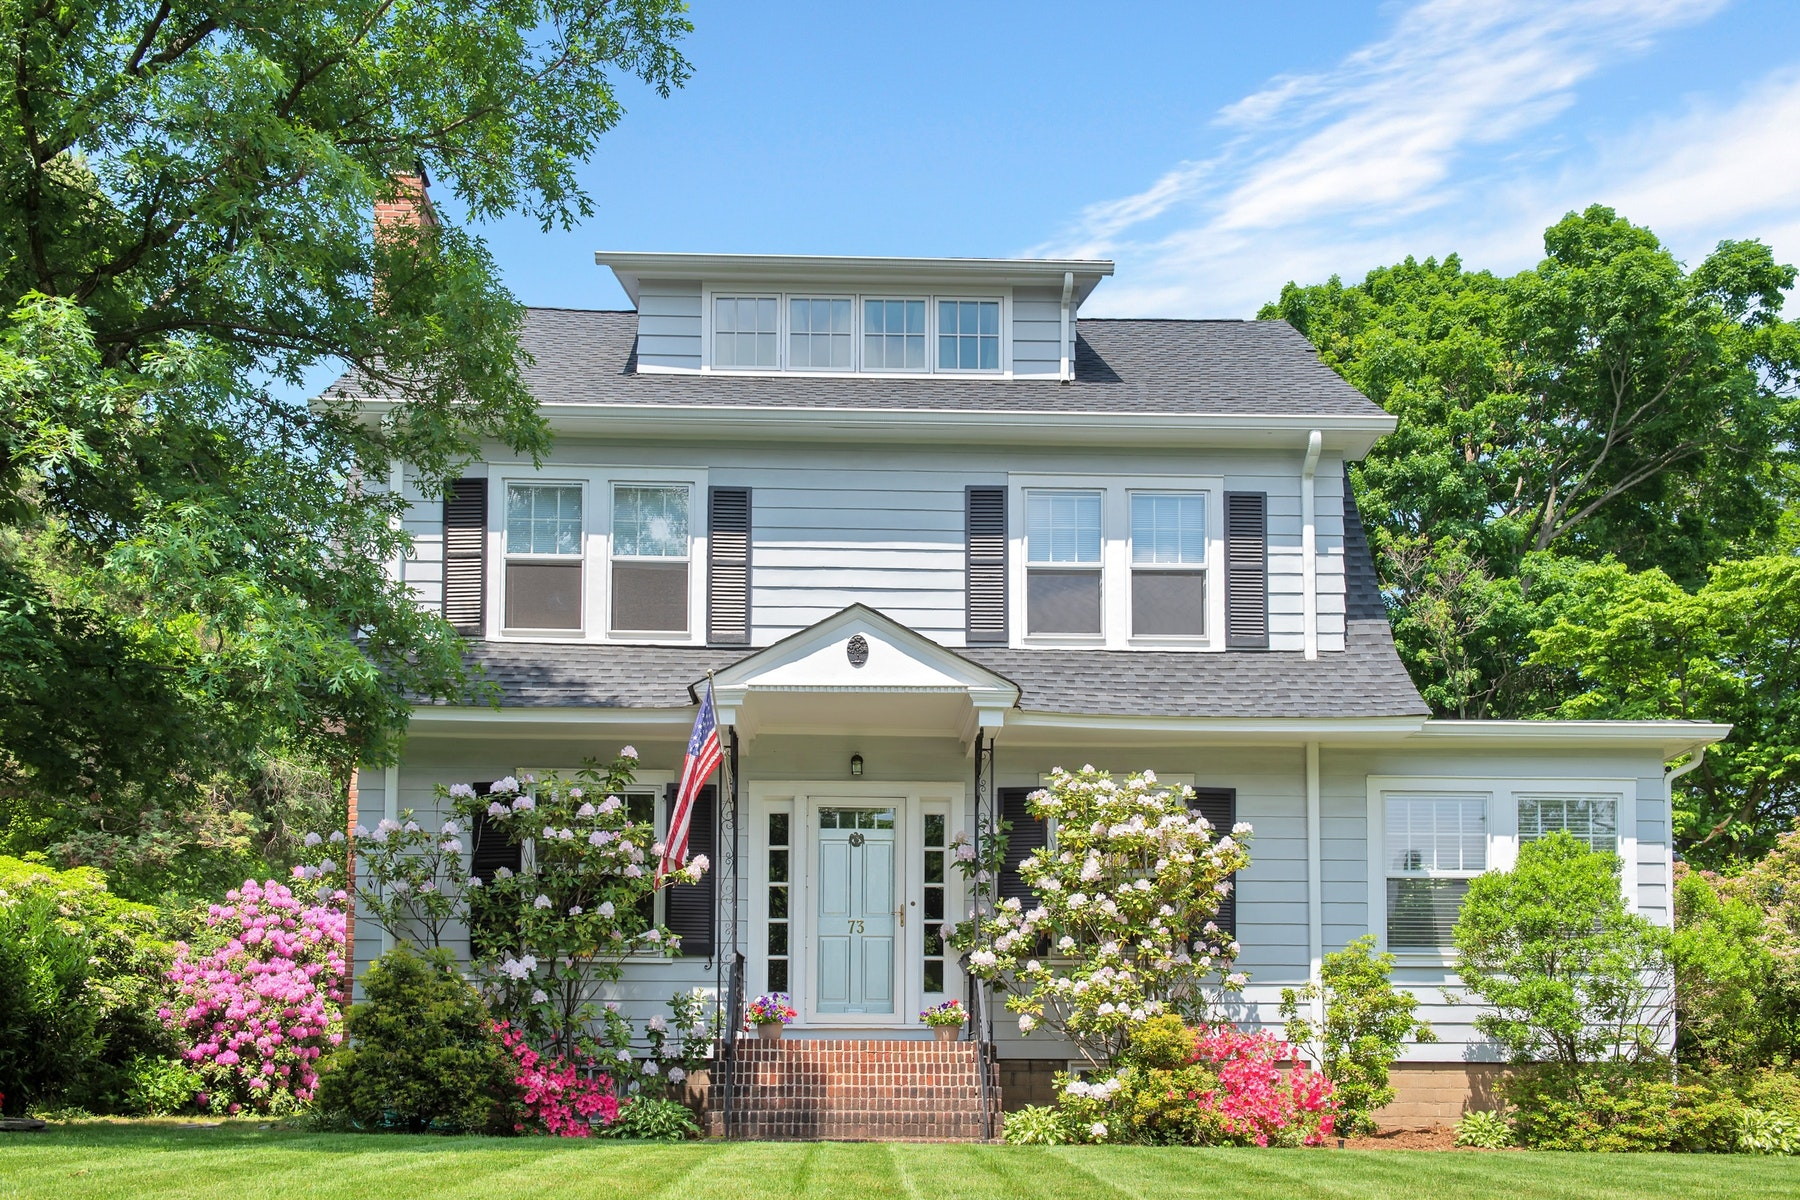 Single Family Home for Sale at Classic Glen Ridge Center Hall Colonial 73 Oxford Street, Glen Ridge, New Jersey 07028 United States